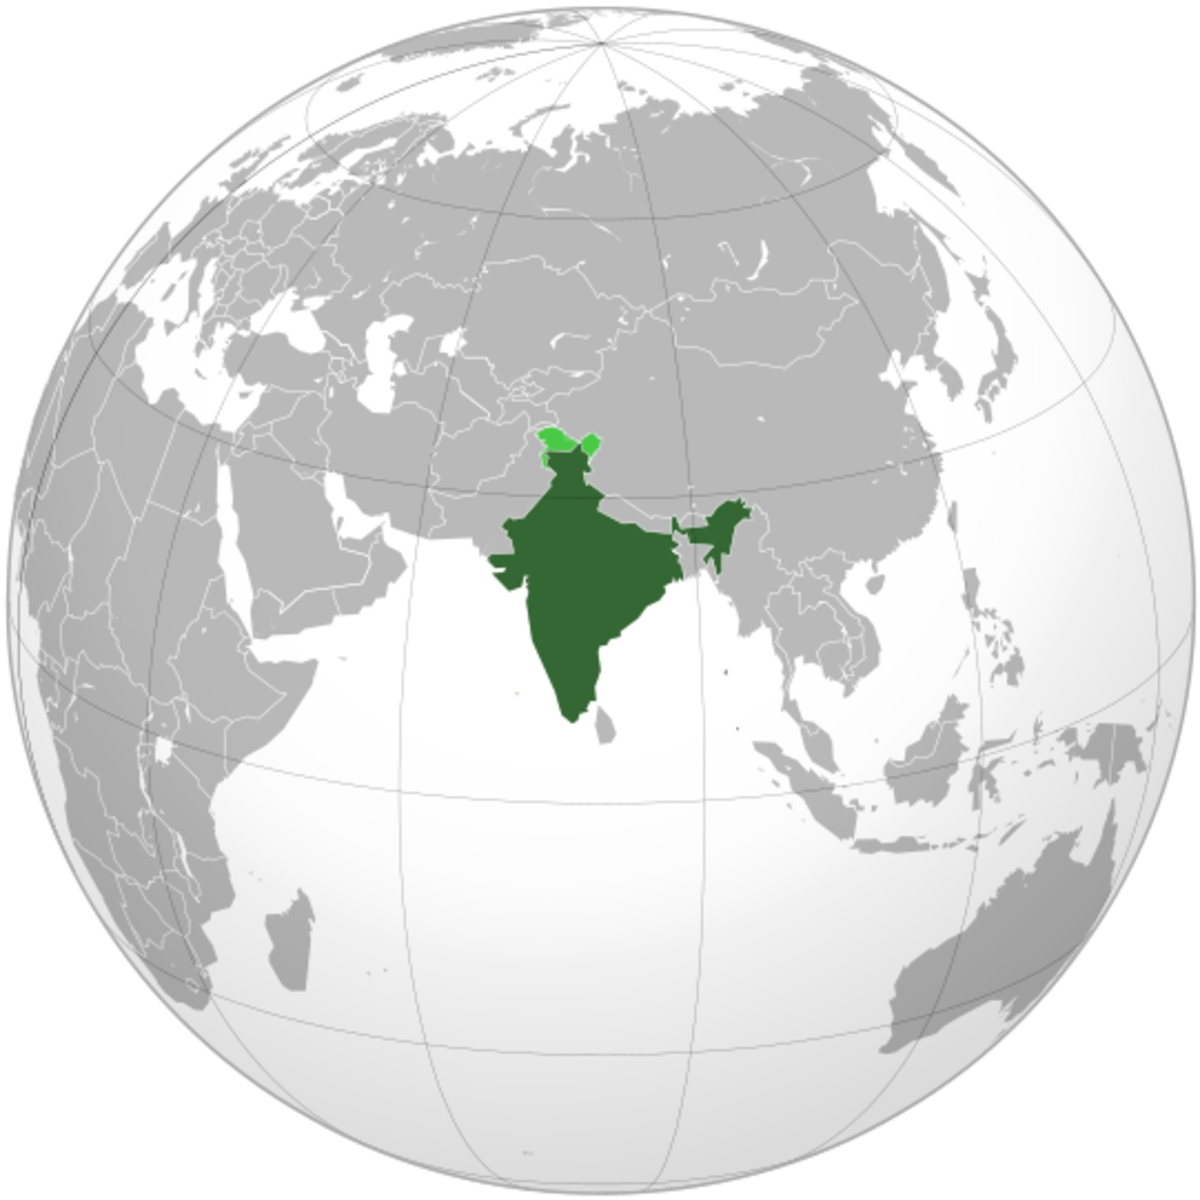 Map showing India